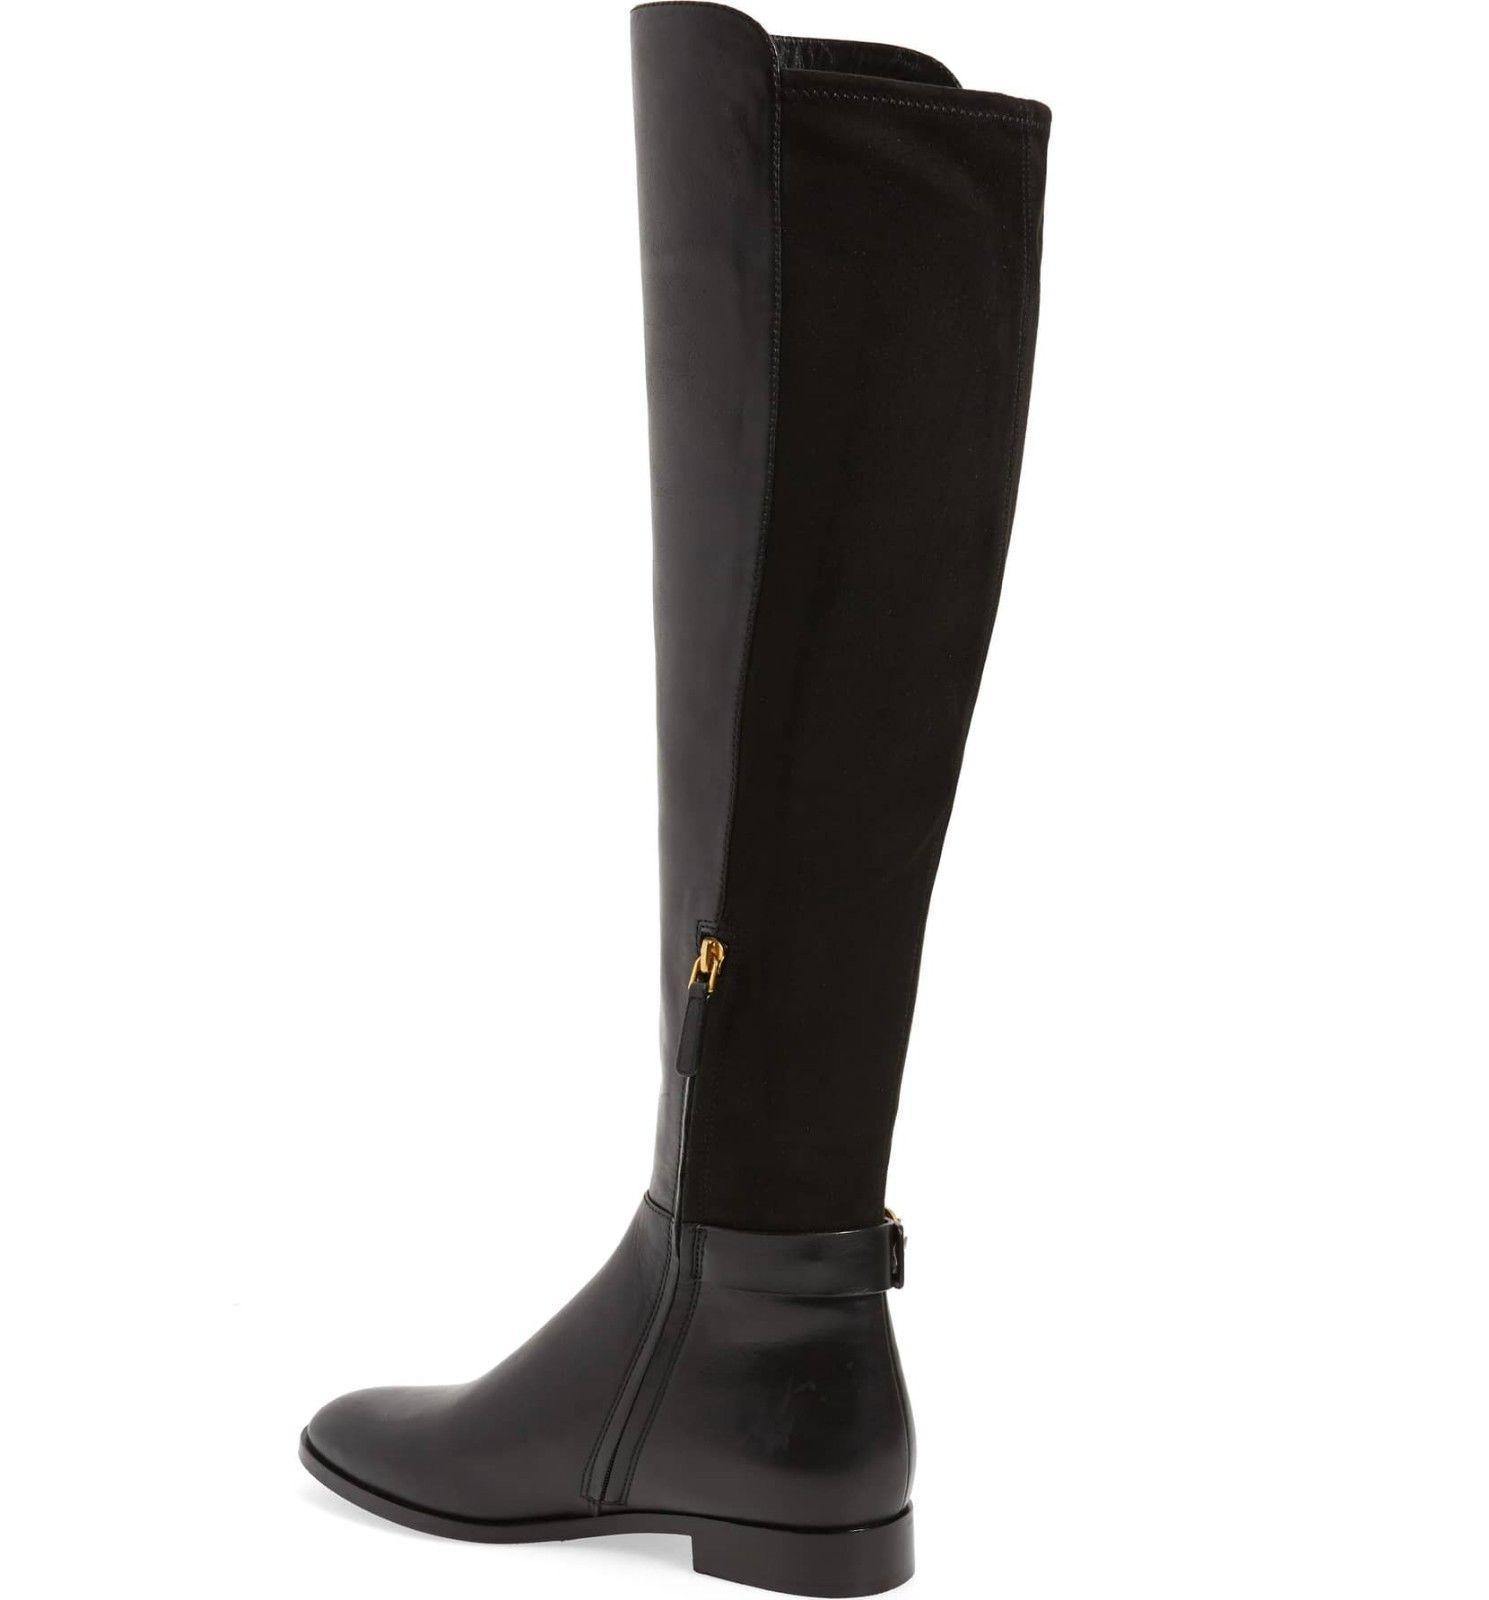 382eb8a62a51 Tory Burch MARSDEN Stretch Riding Boots Flat Equestrian Booties 6 Over Knee